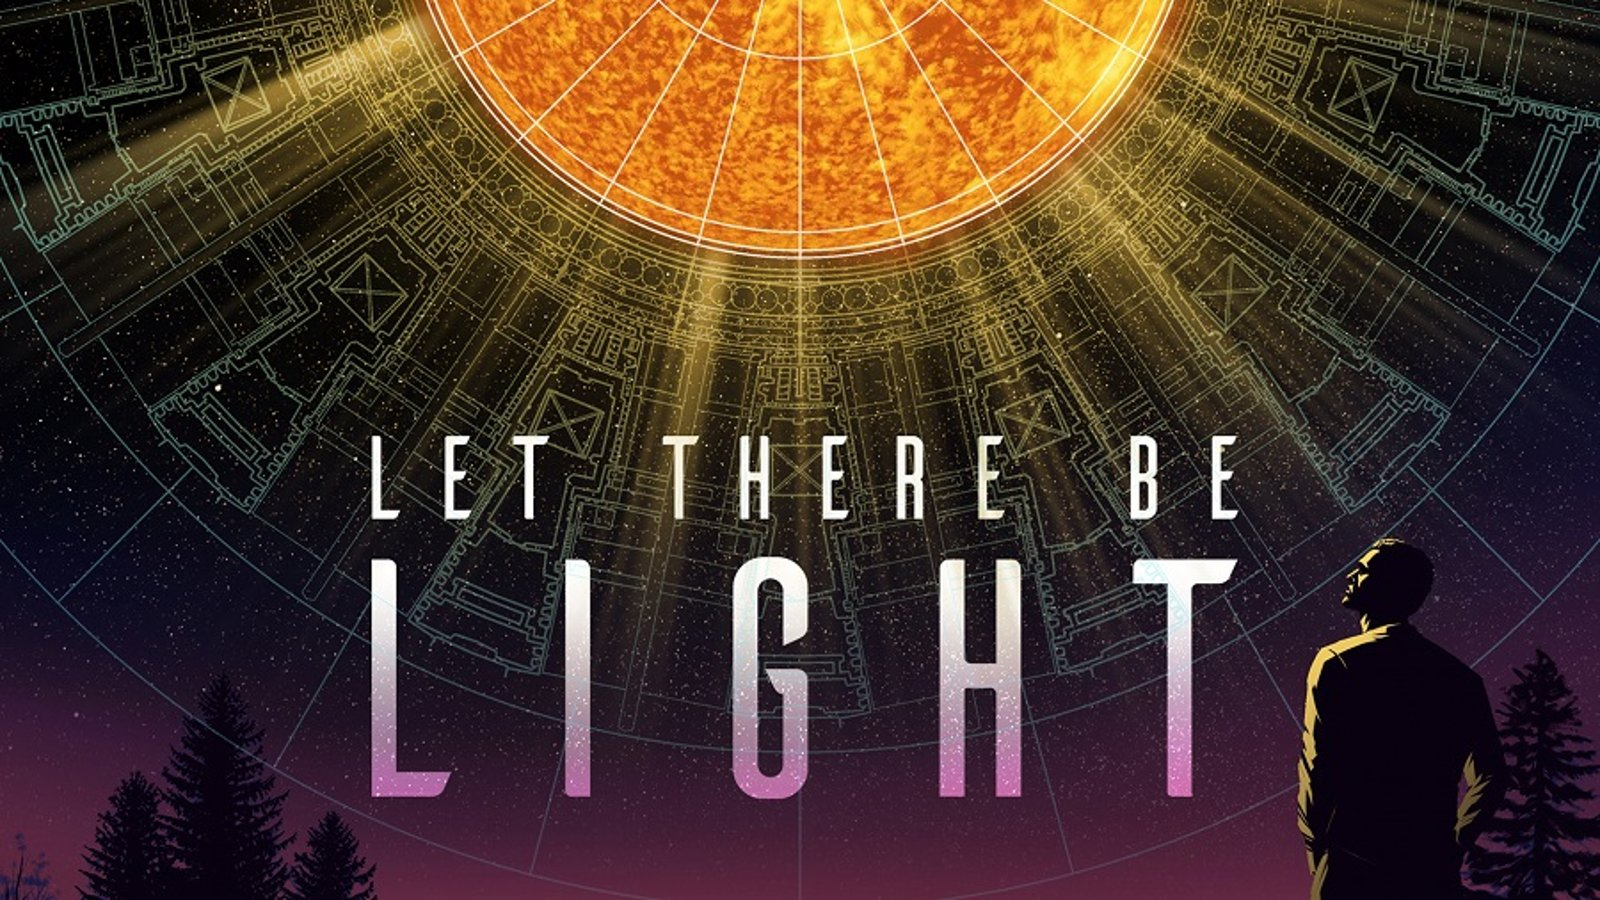 Let There Be Light - Building an Artificial Star